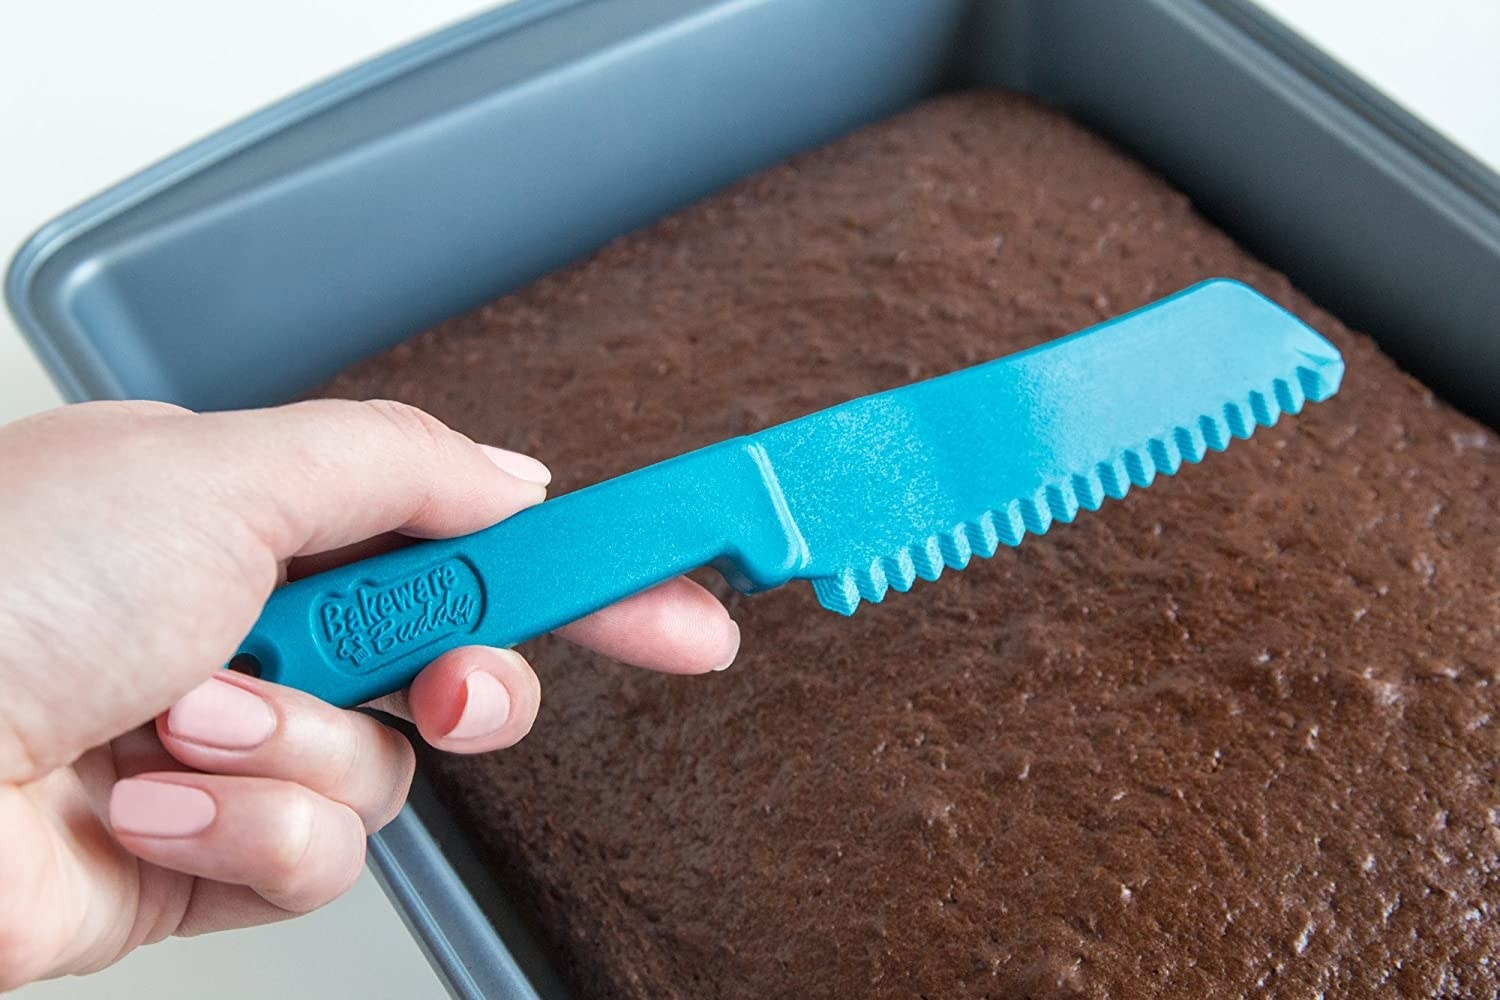 A person holding the baking knife over a sheet cake